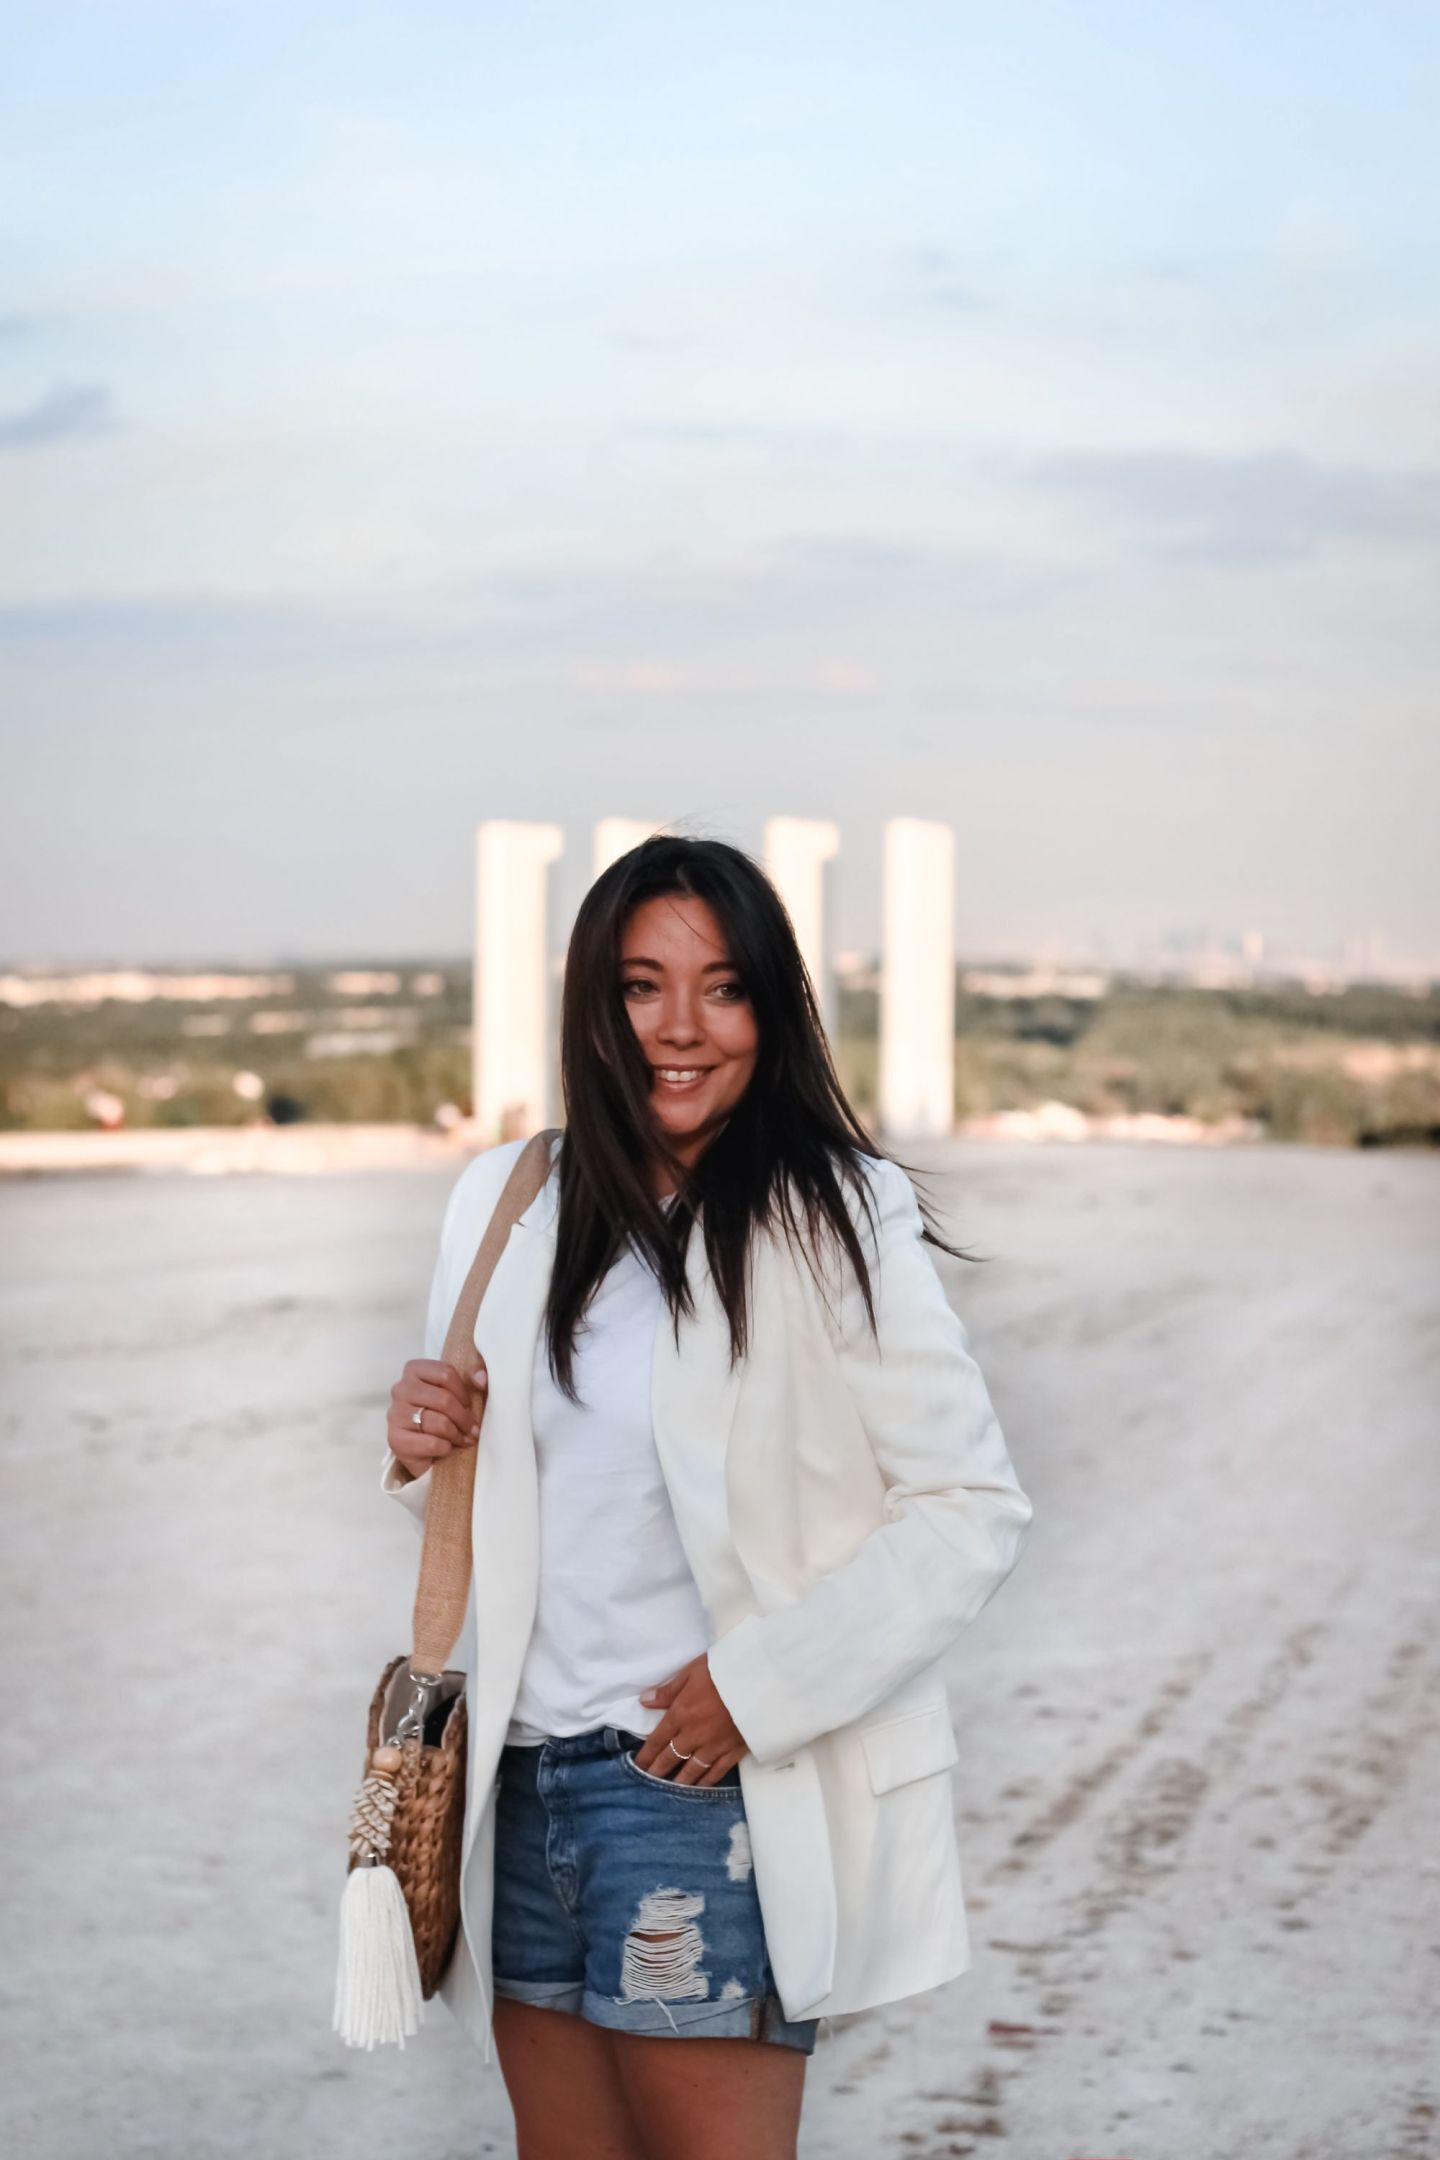 blazer blanc, blazer lin, and other stories, le petit cartel, sac bali, veste tailleur femme, short jean, blogueuse mode, blog mode, le blazer blanc je le porte comment